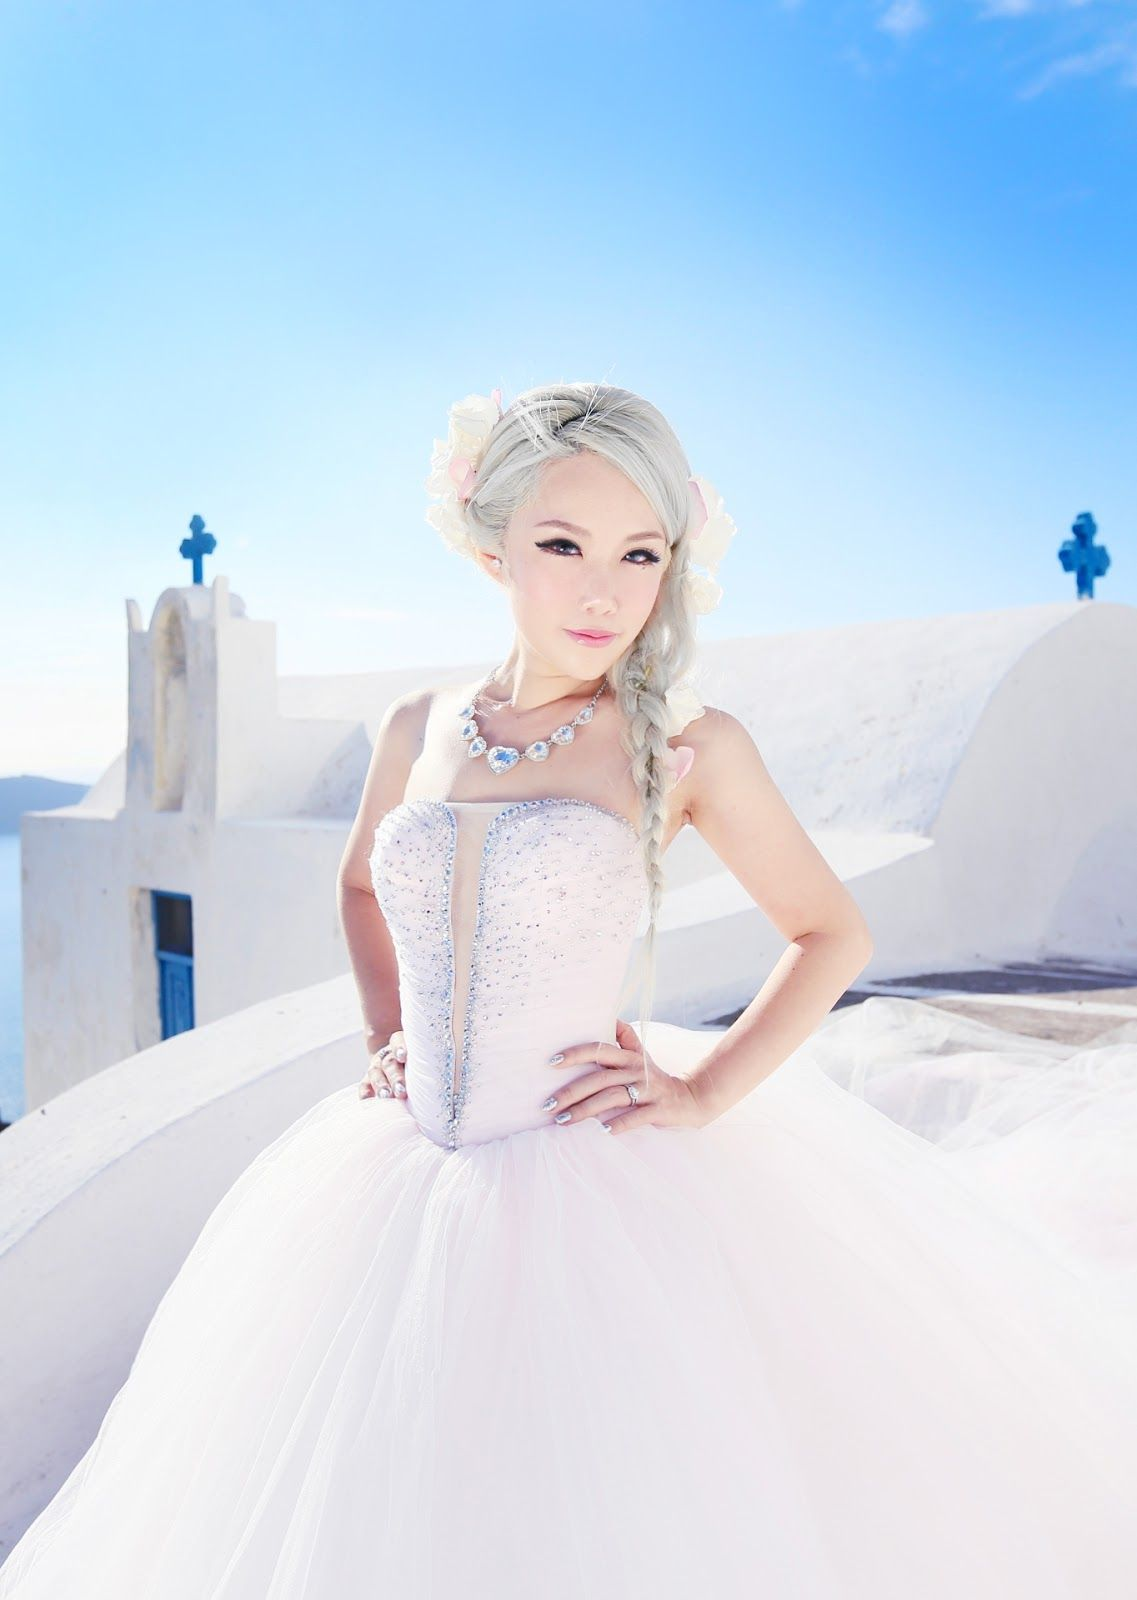 Xiaxue S Amazing Wedding Shoot With Sunrise Greece In Santorini Xiaxue Blogspot Com Bridal Musings Wedding Wedding Photoshoot Wedding